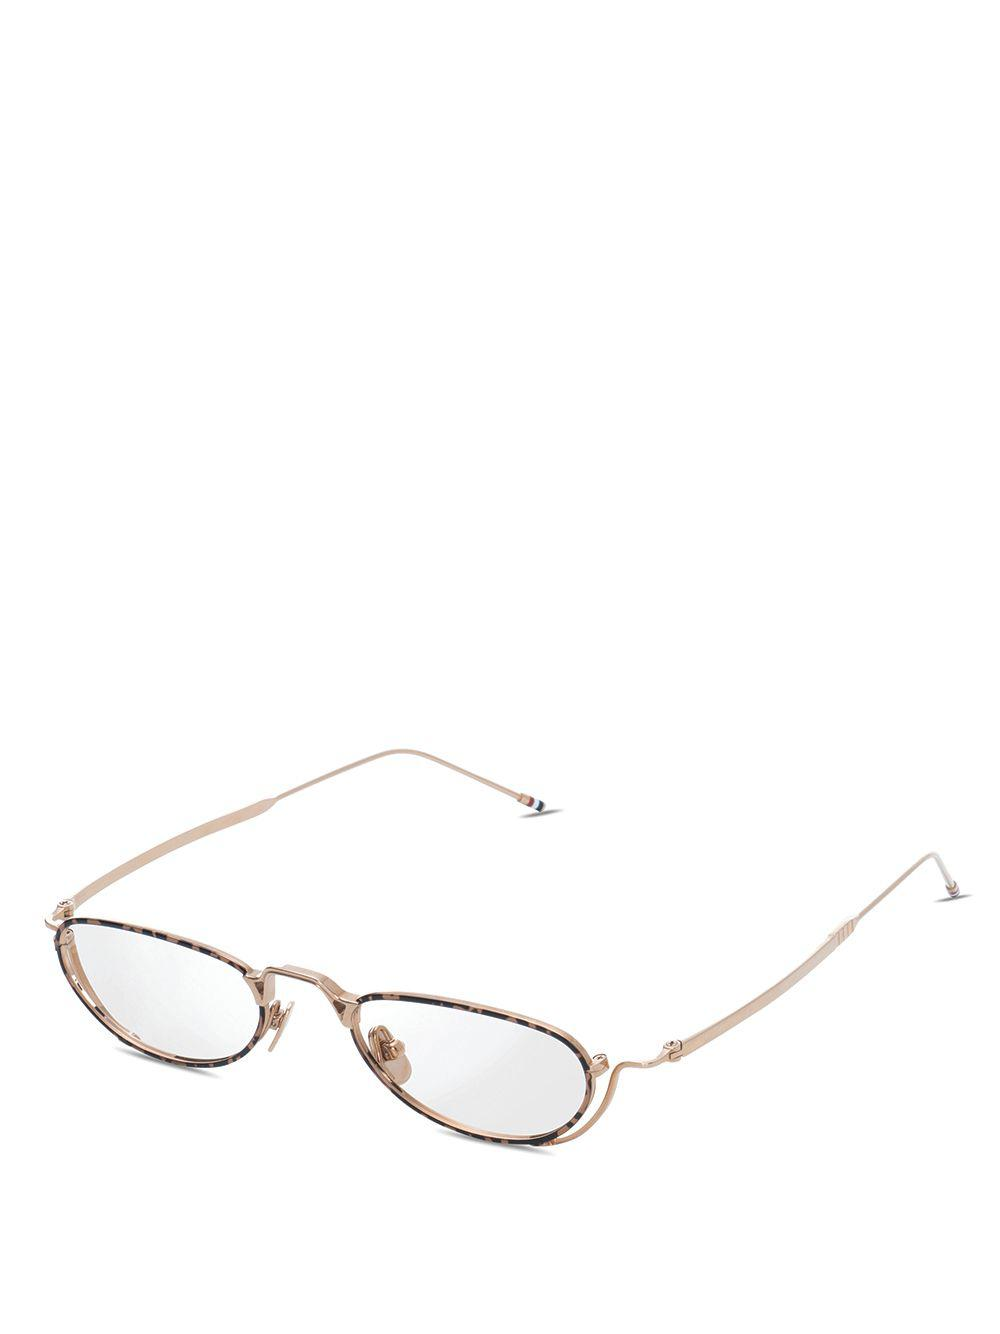 6a5c96f10c1 Thom Browne White Gold   Tortoise Glasses in Metallic for Men - Lyst